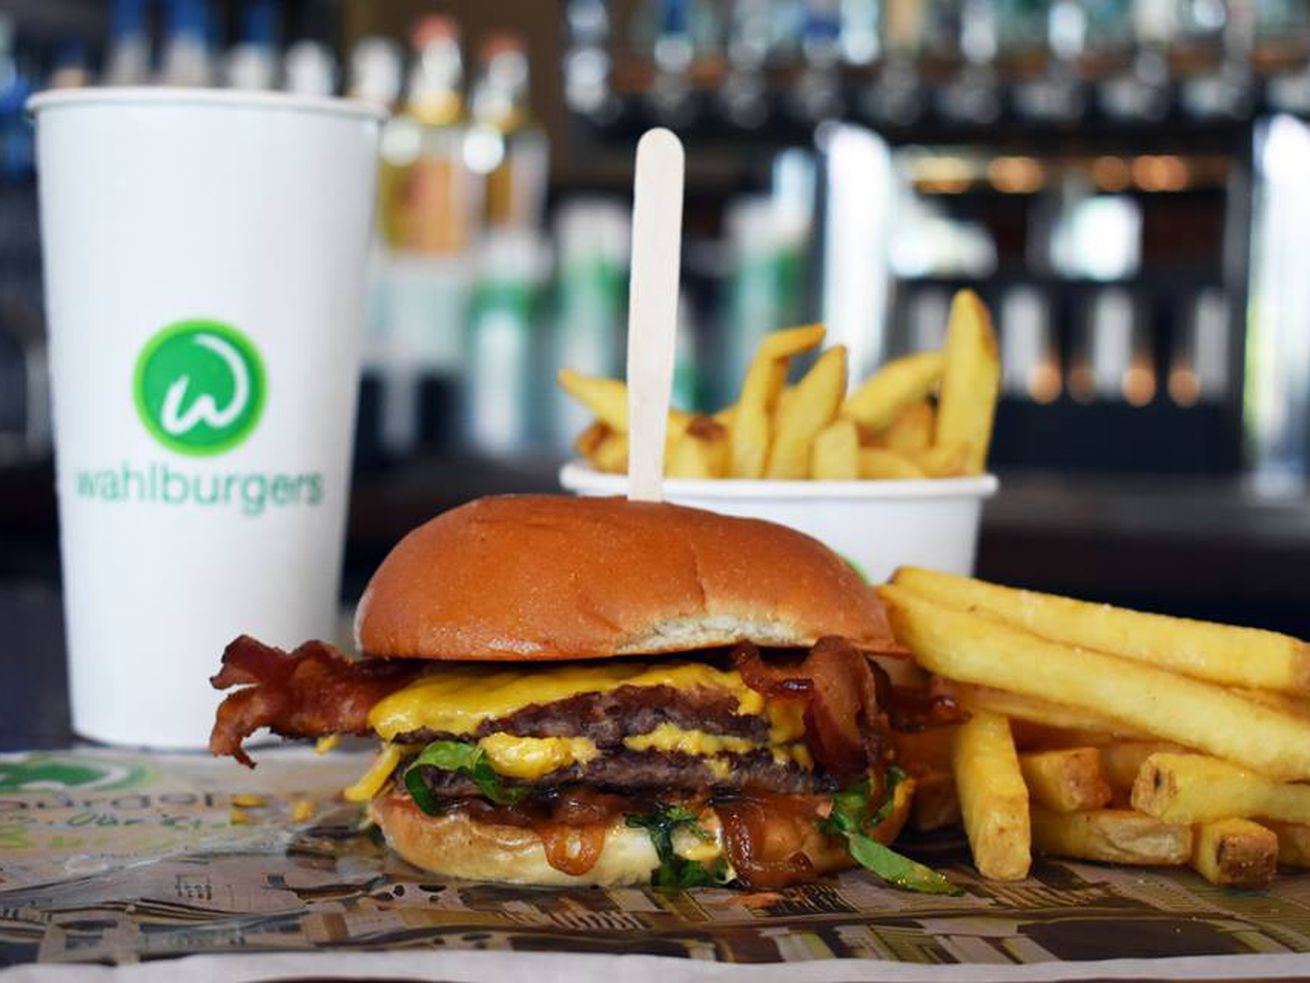 Wahlburgers burgers and more will soon be available in Chicago